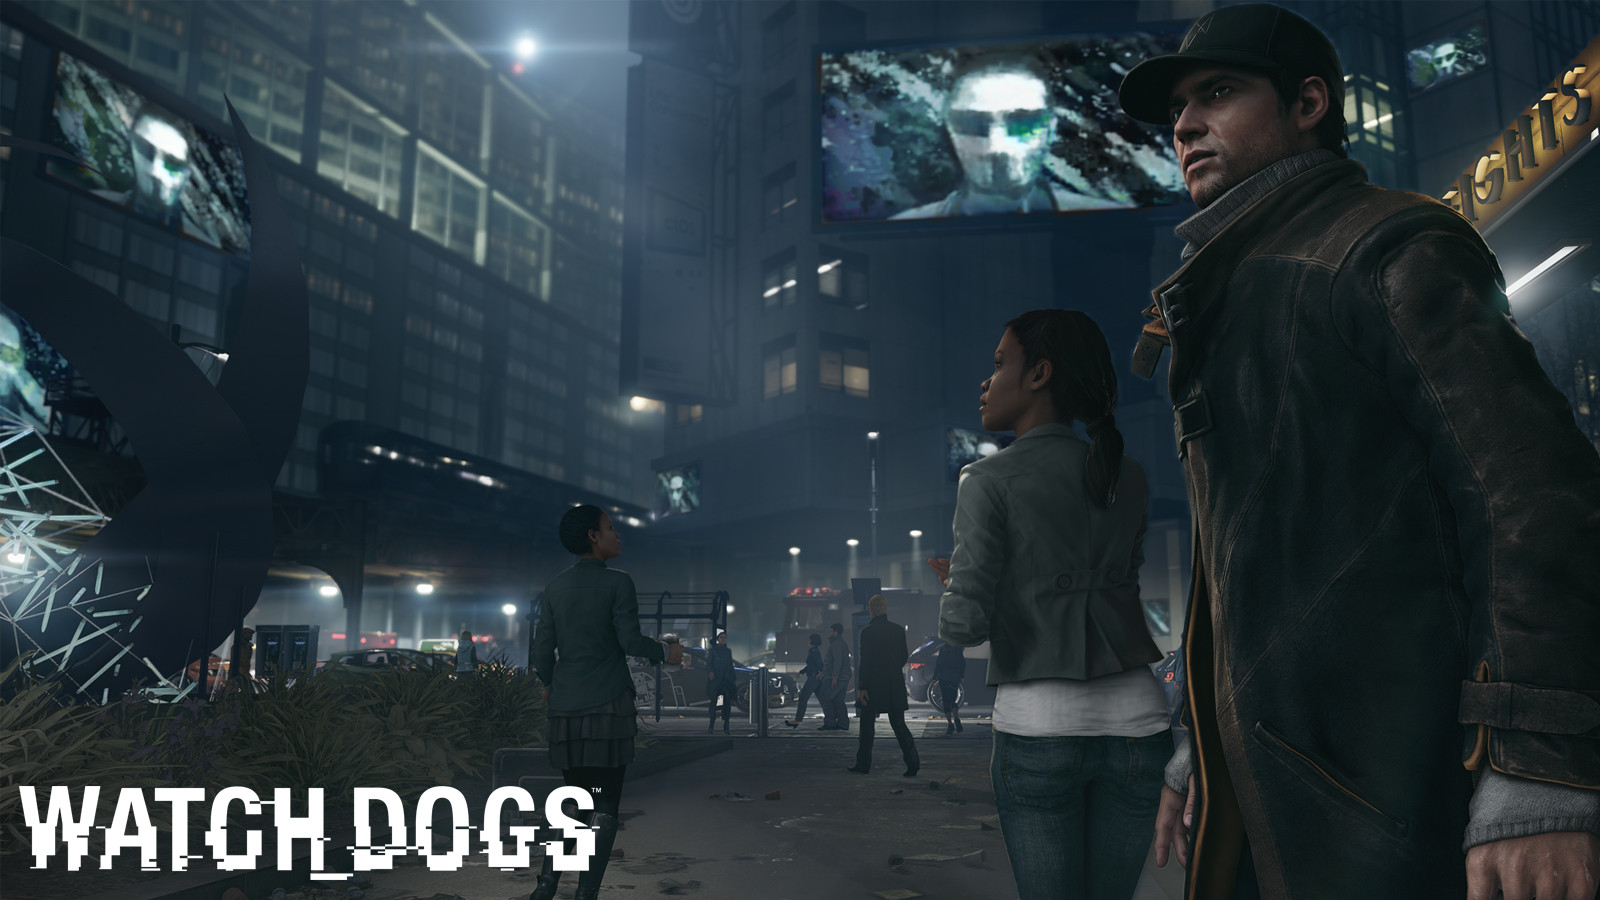 Watch_Dogs_nowhere_to_hide_1600x900